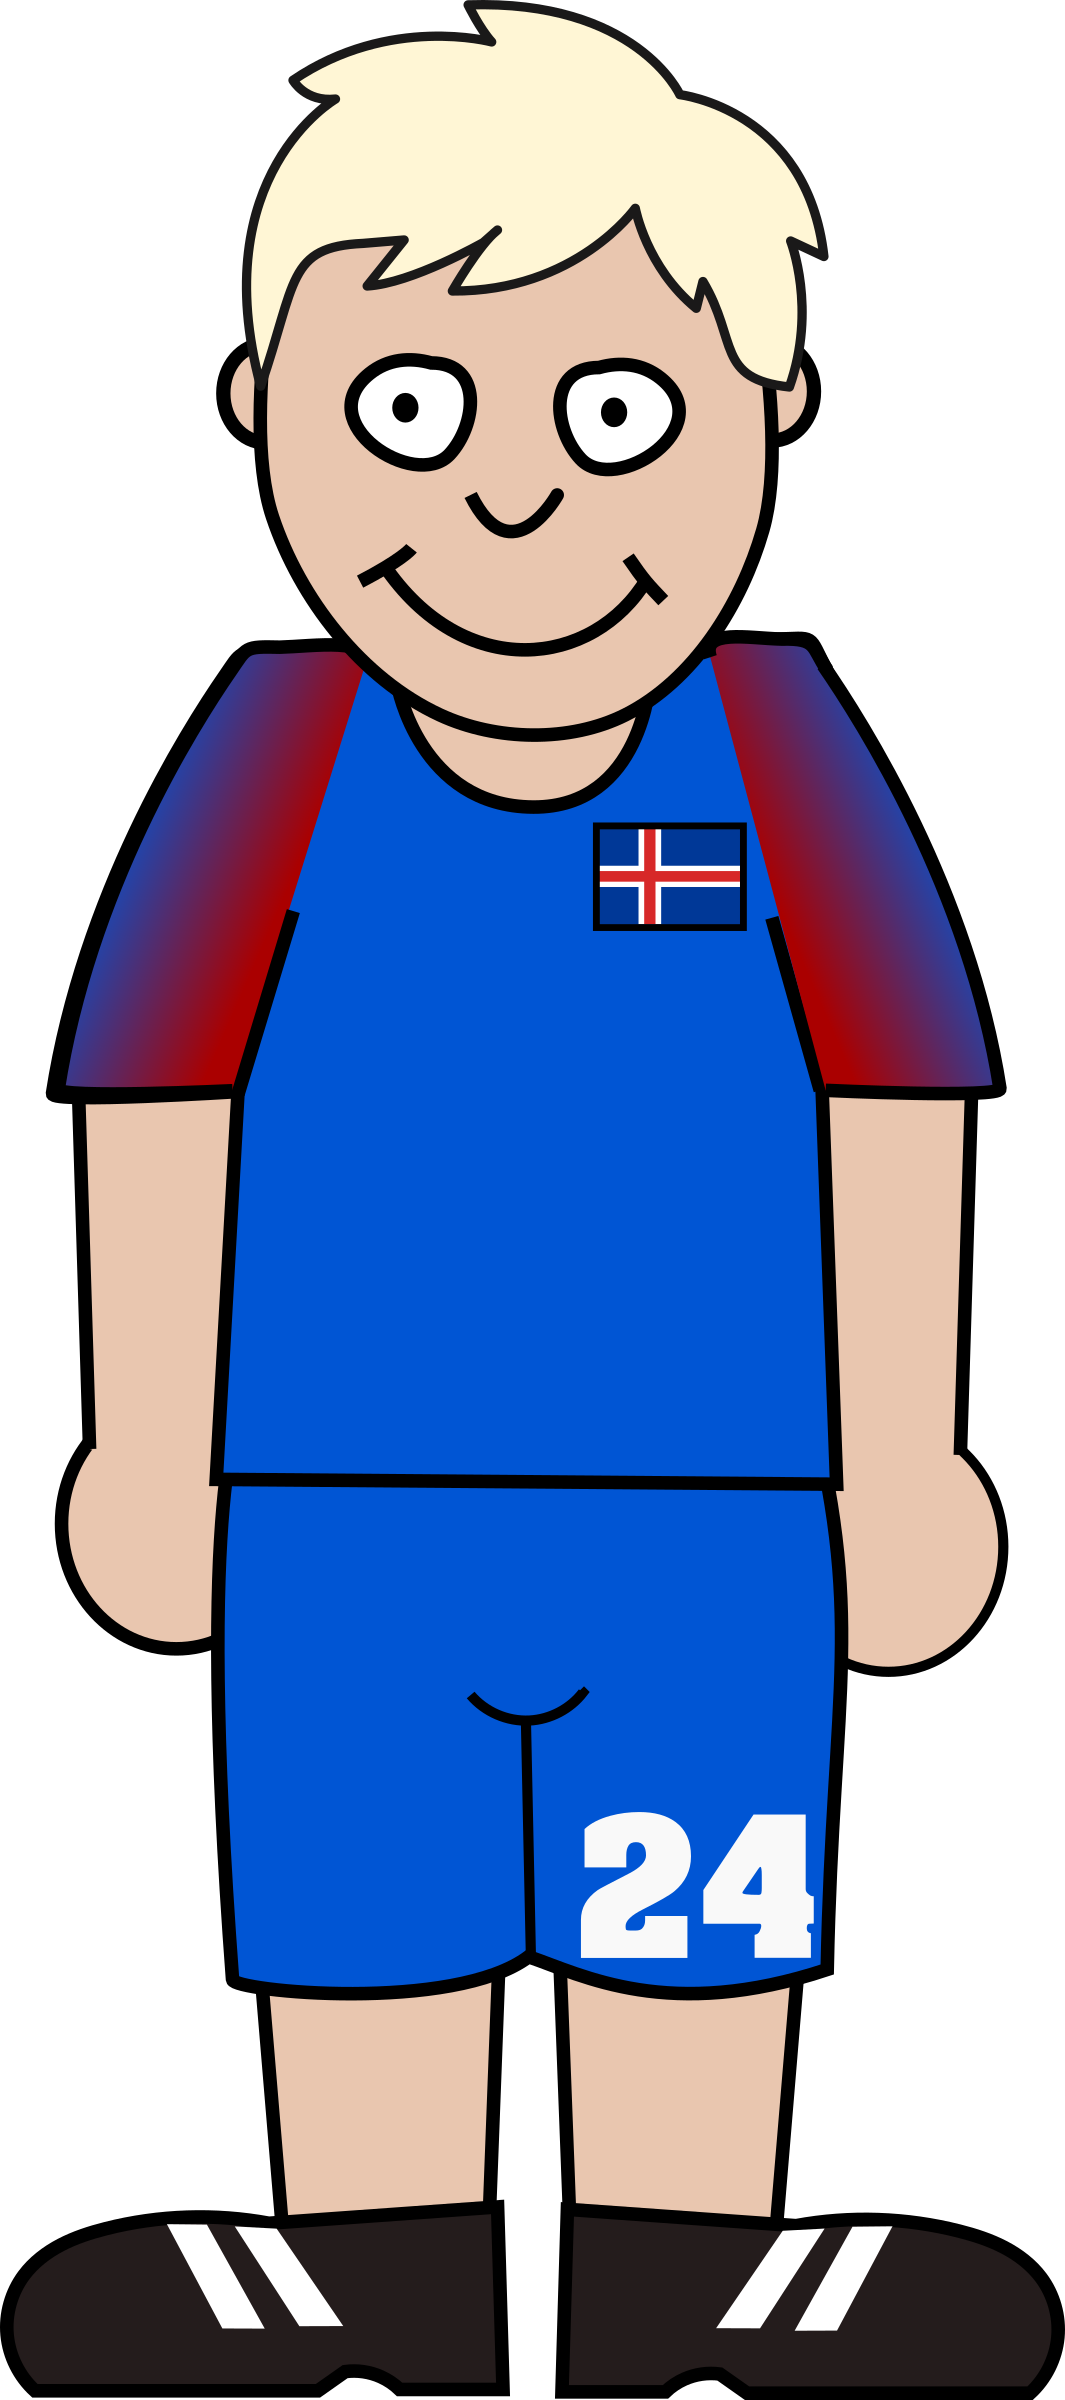 Clipart image football player clip transparent Clipart - Football player iceland clip transparent